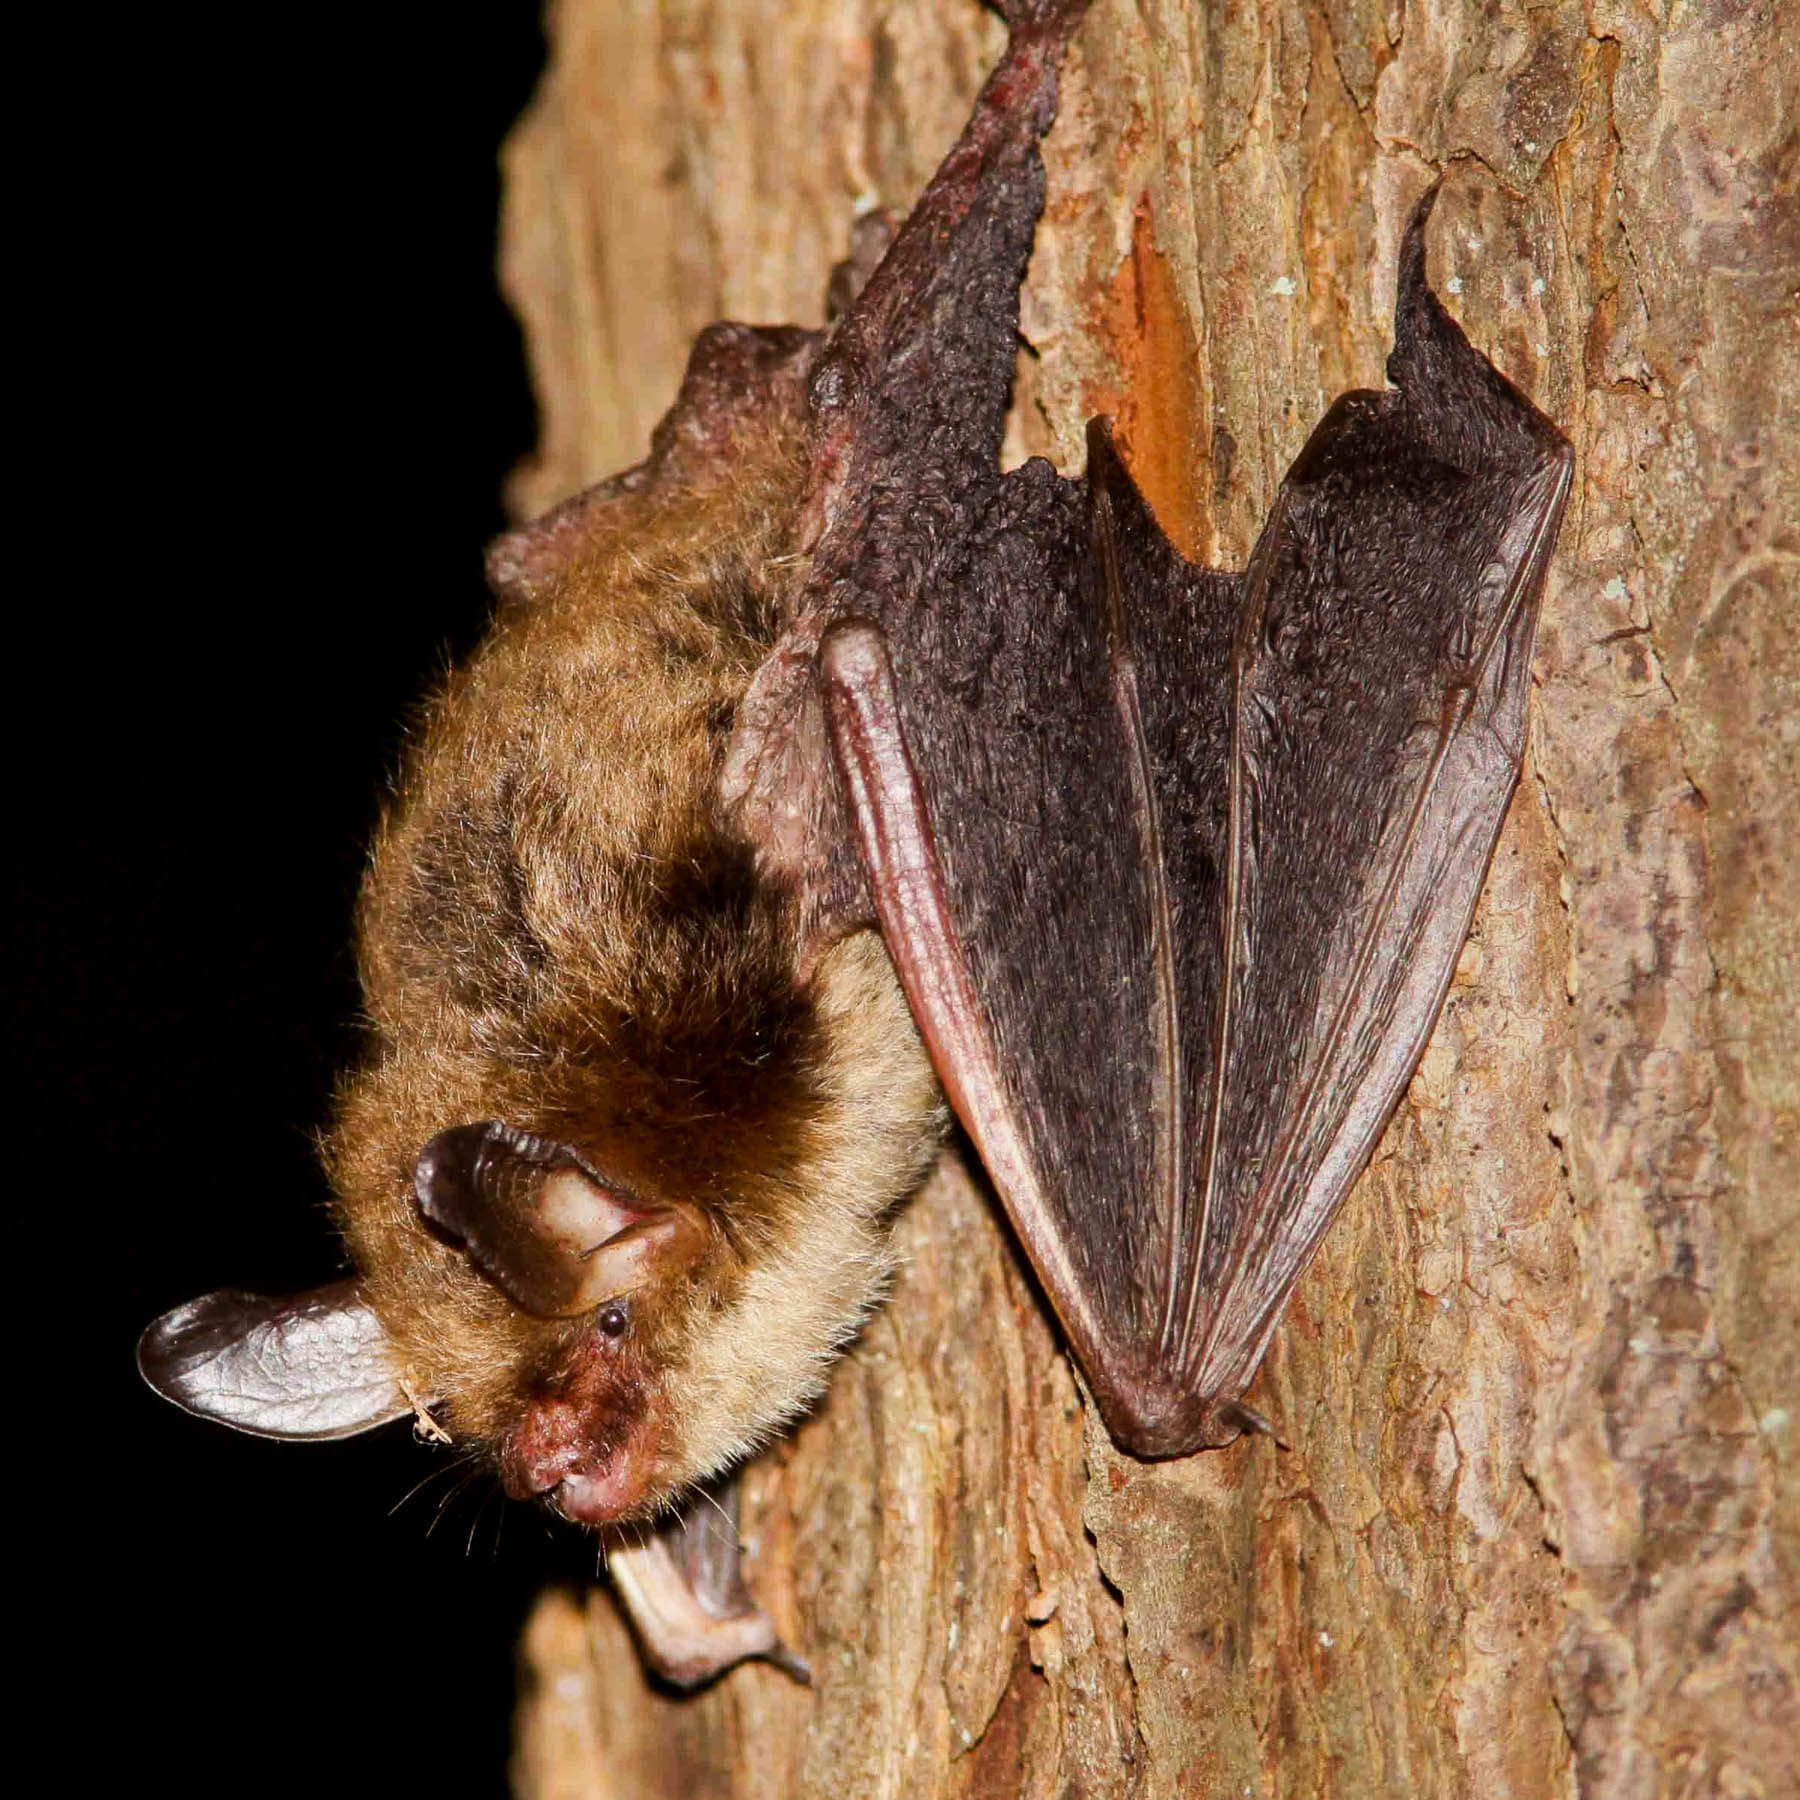 A healthy northern long-eared bat clings to a stone wall.